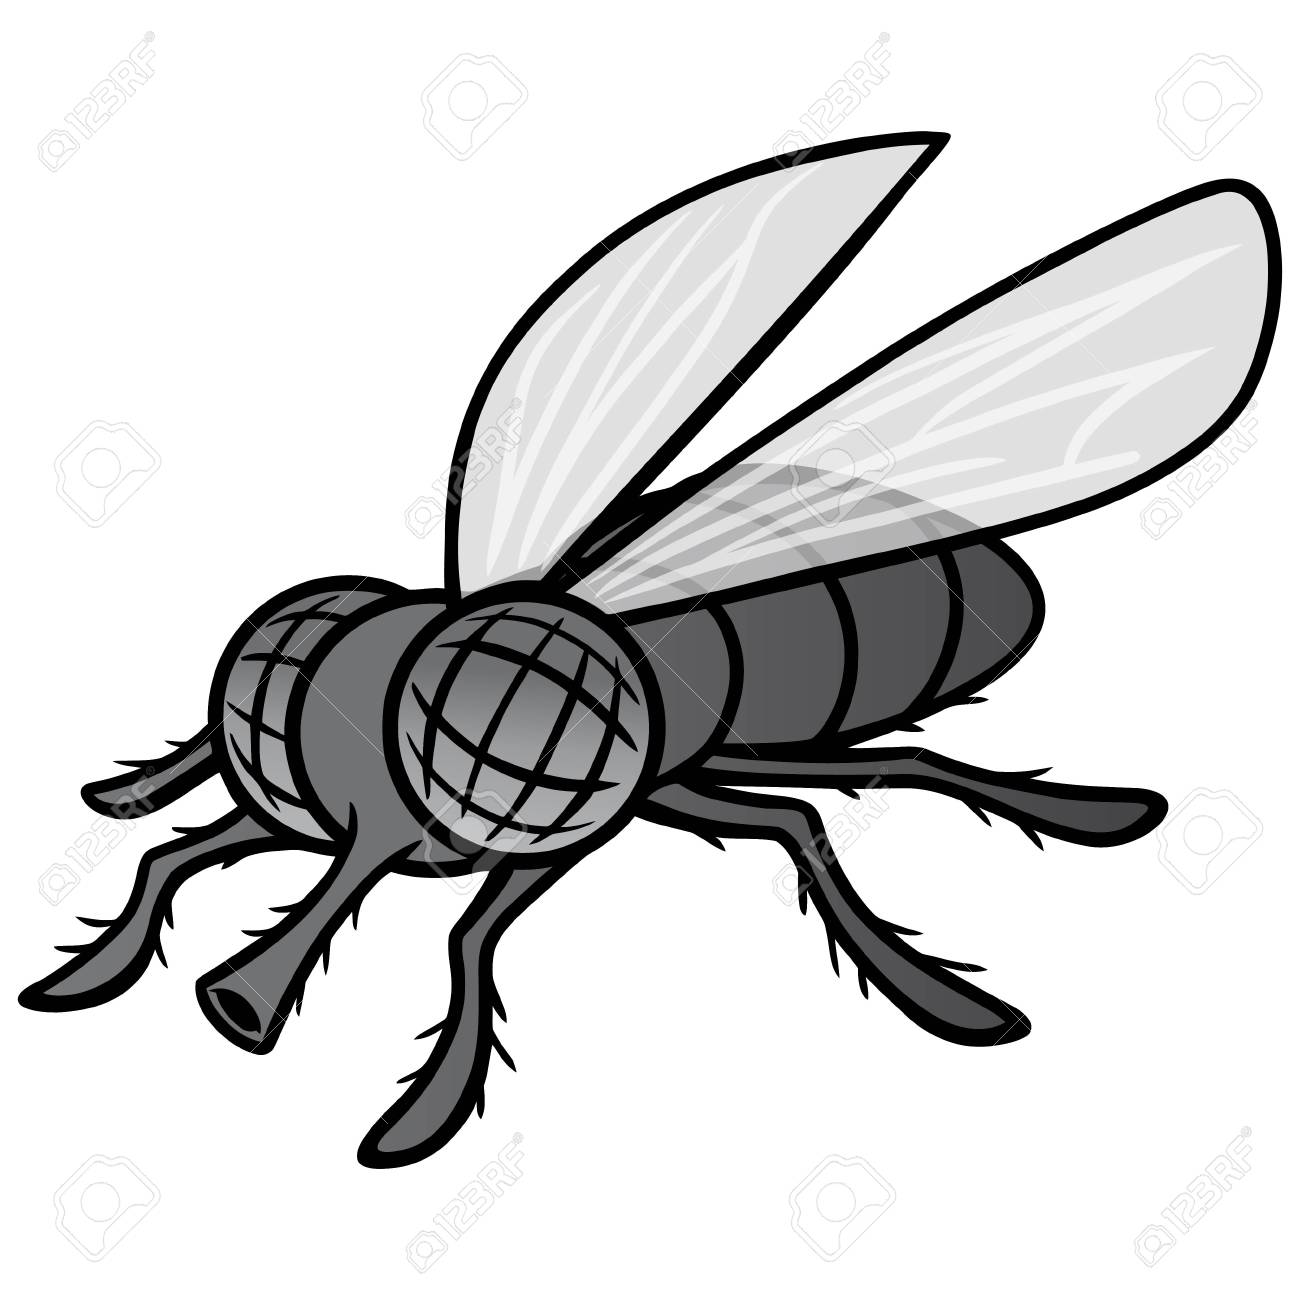 Black and White Fly Mascot.